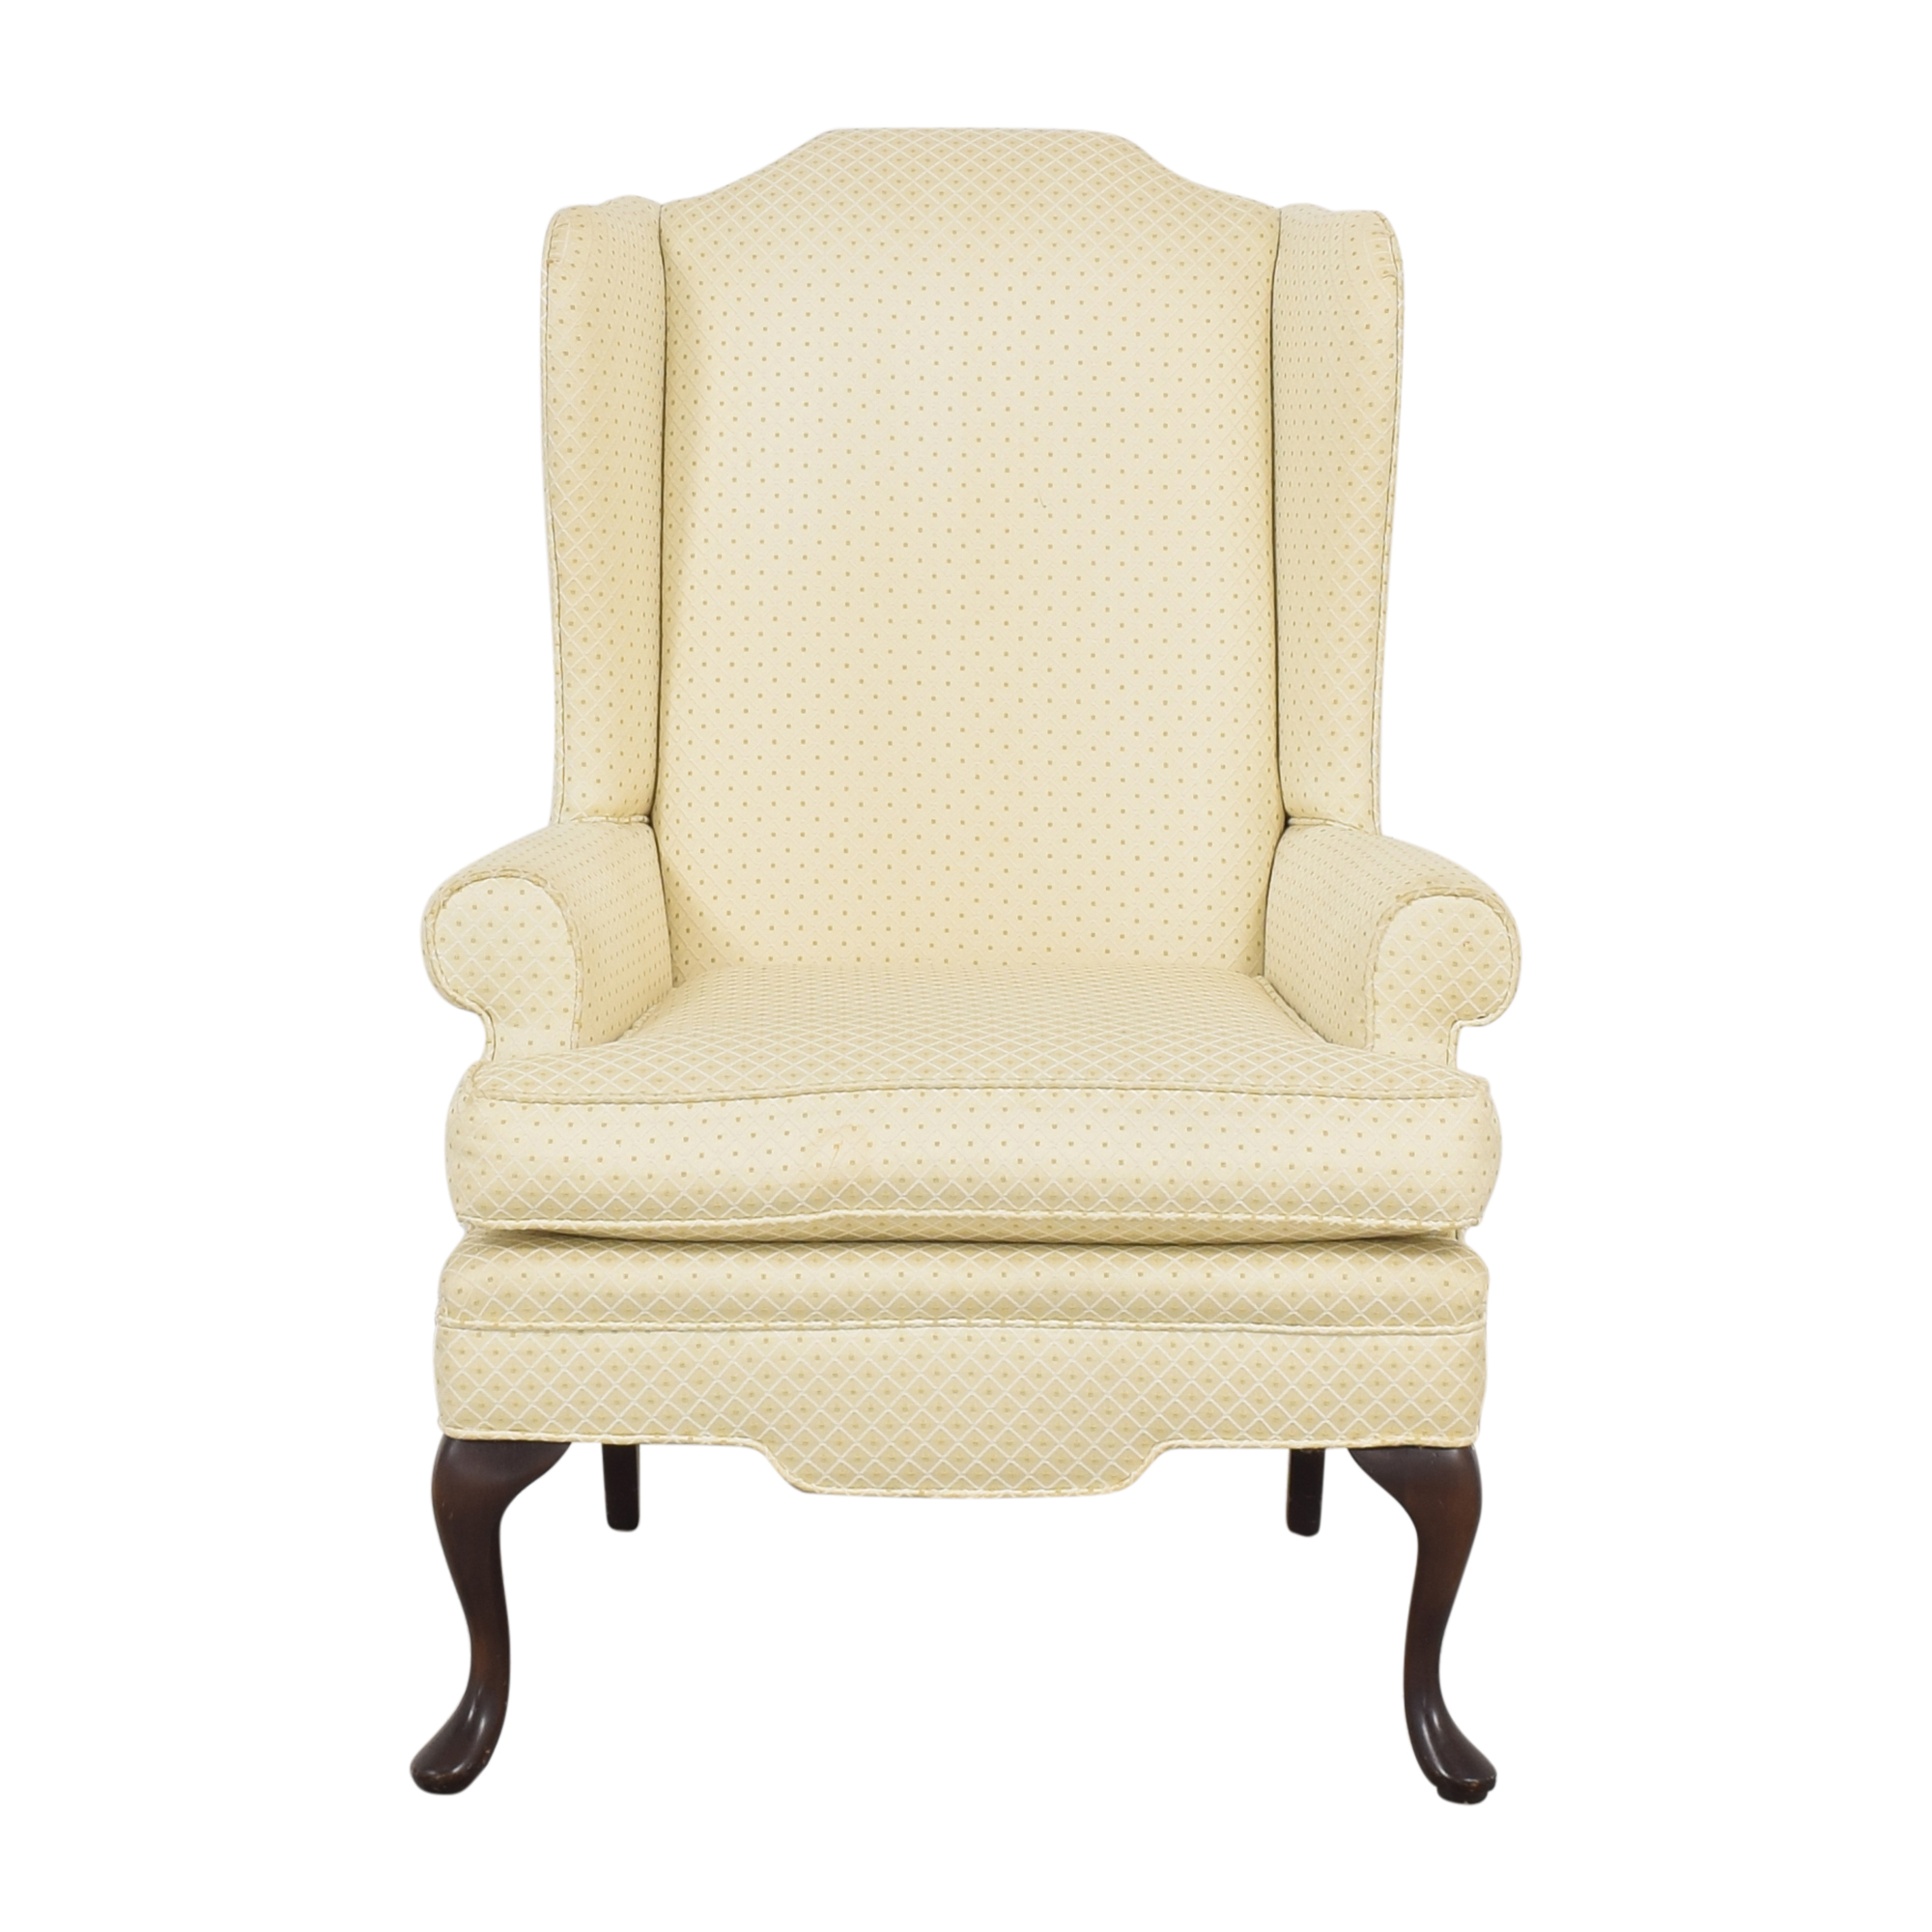 Manovers Vintage Wingback Chair ma